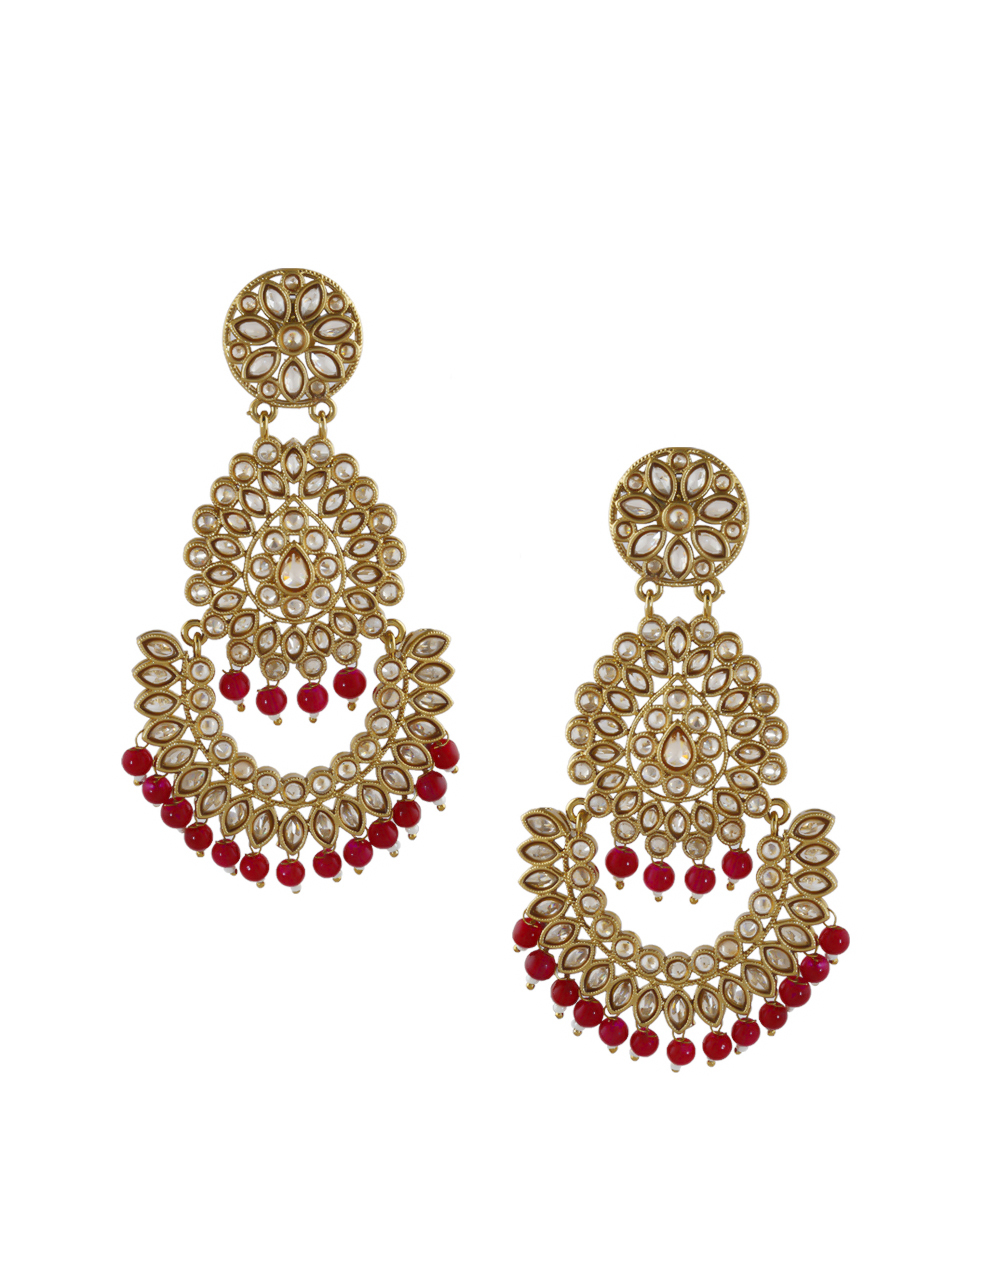 Red Colour Gold Finish Fancy Stunning Long Earrings For Women